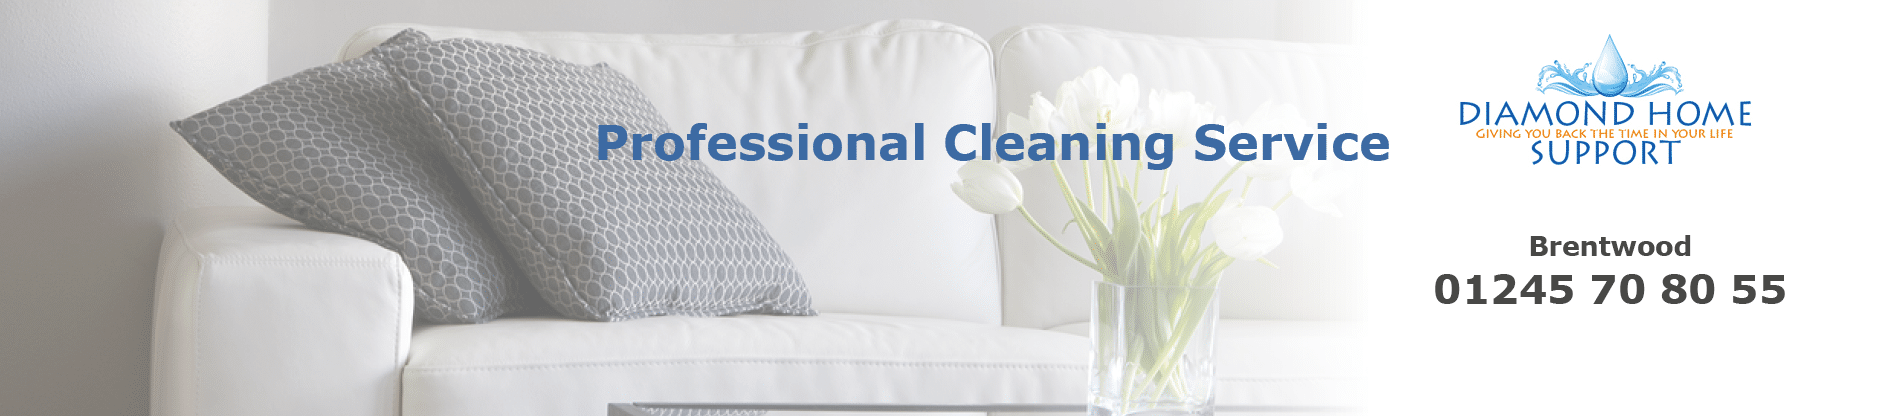 Cleaners in Brentwood